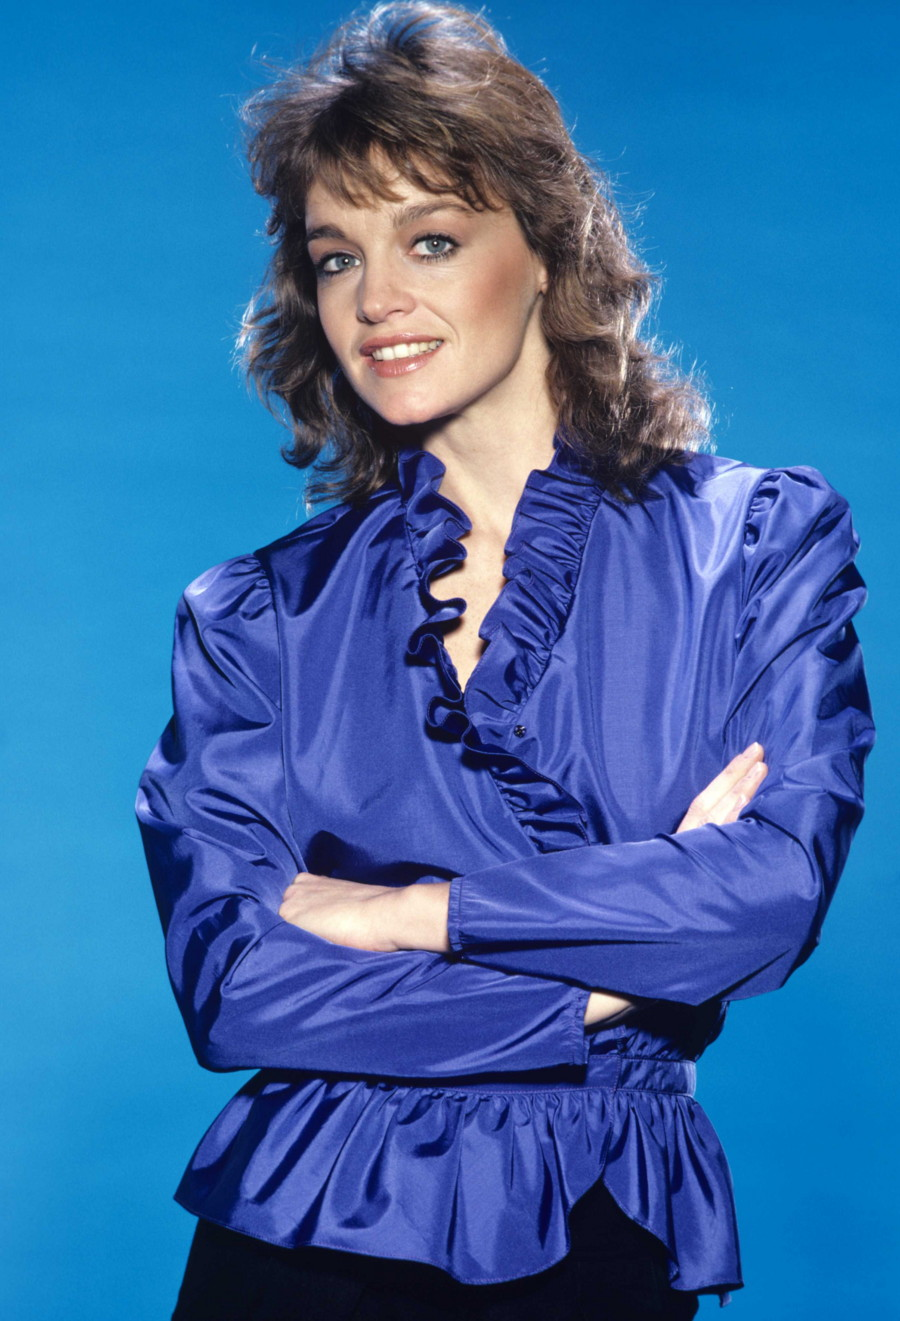 Pamela sue martin hot #11